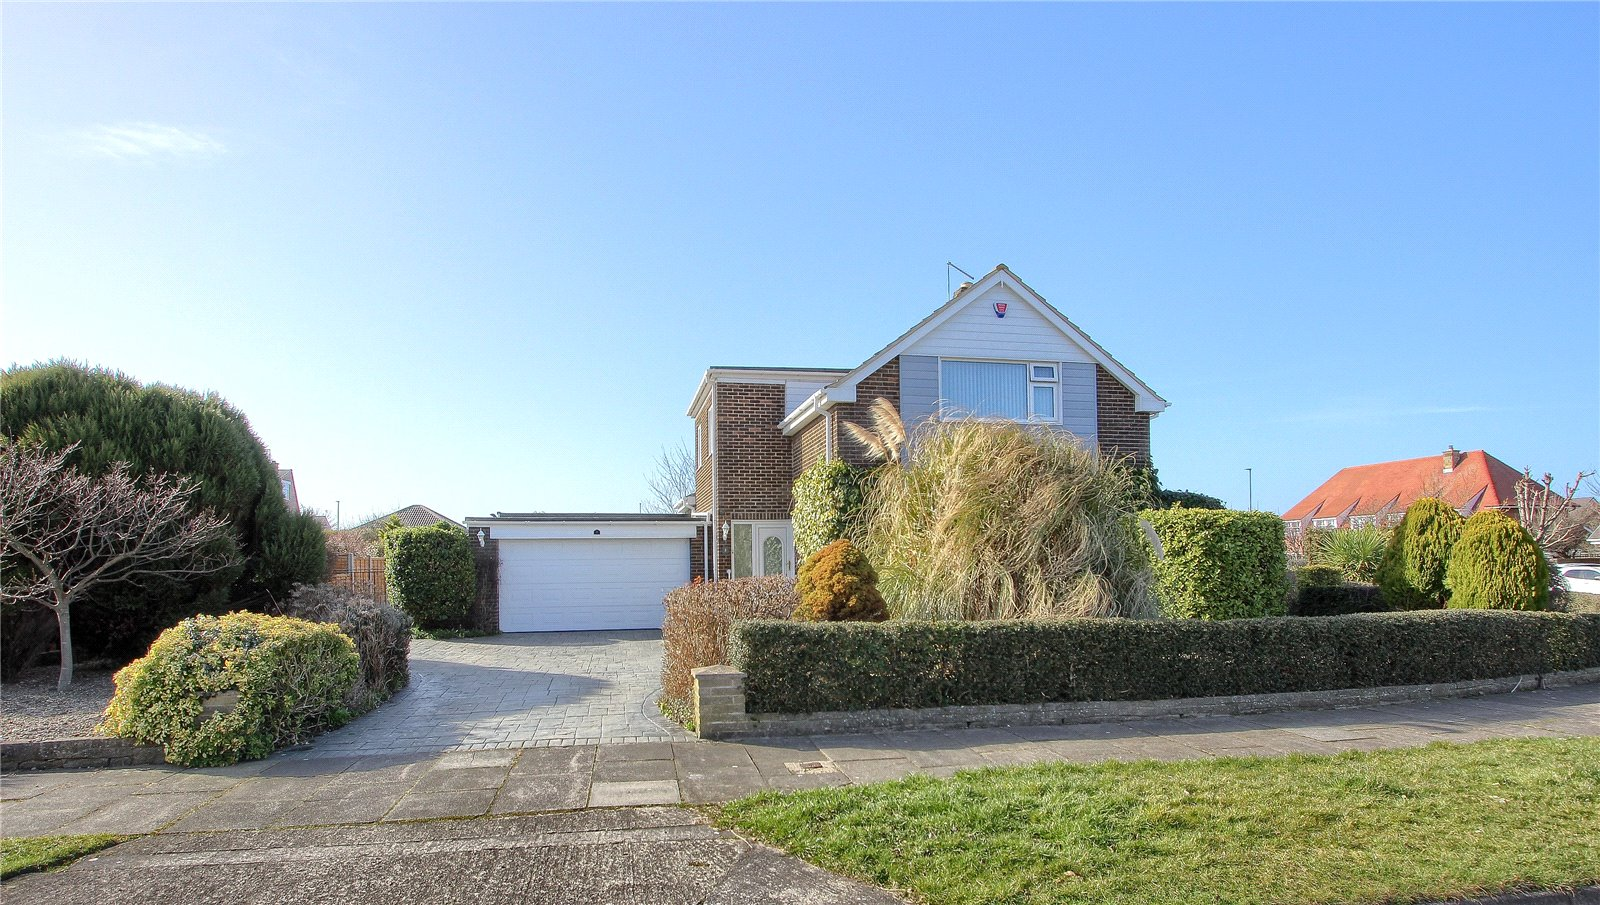 5 bed house for sale in Wheatlands Park, Redcar - Property Image 1